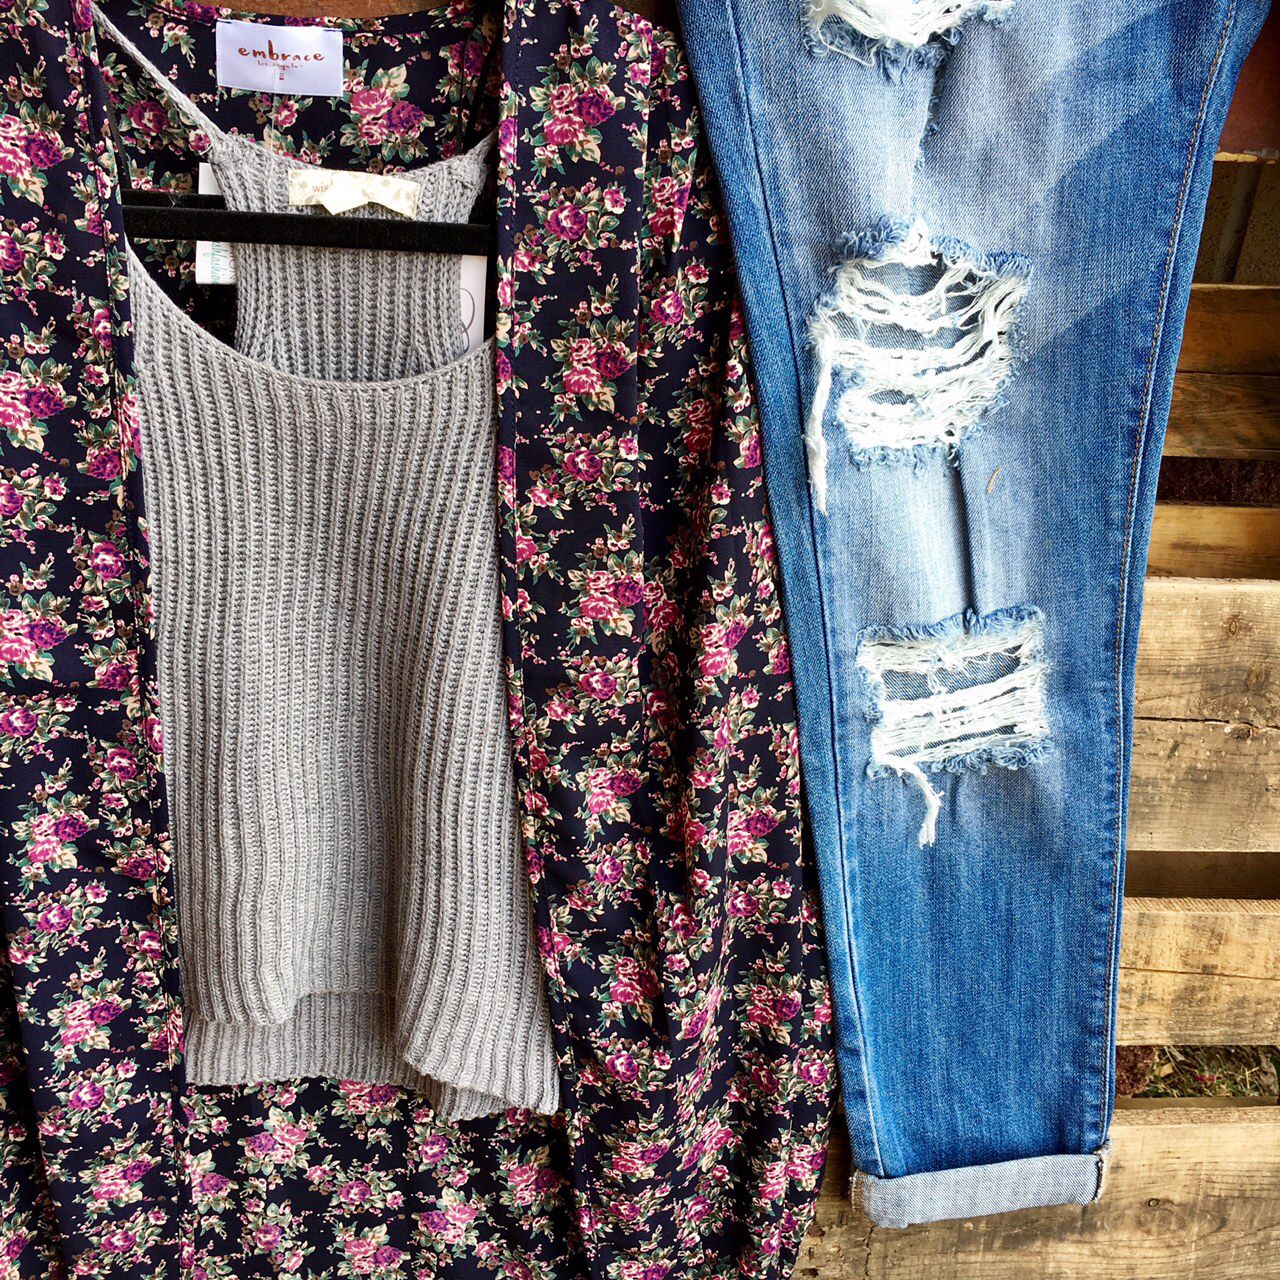 We love this look. Layering a sweater crop top under this floral kimono is perfect for fall transition